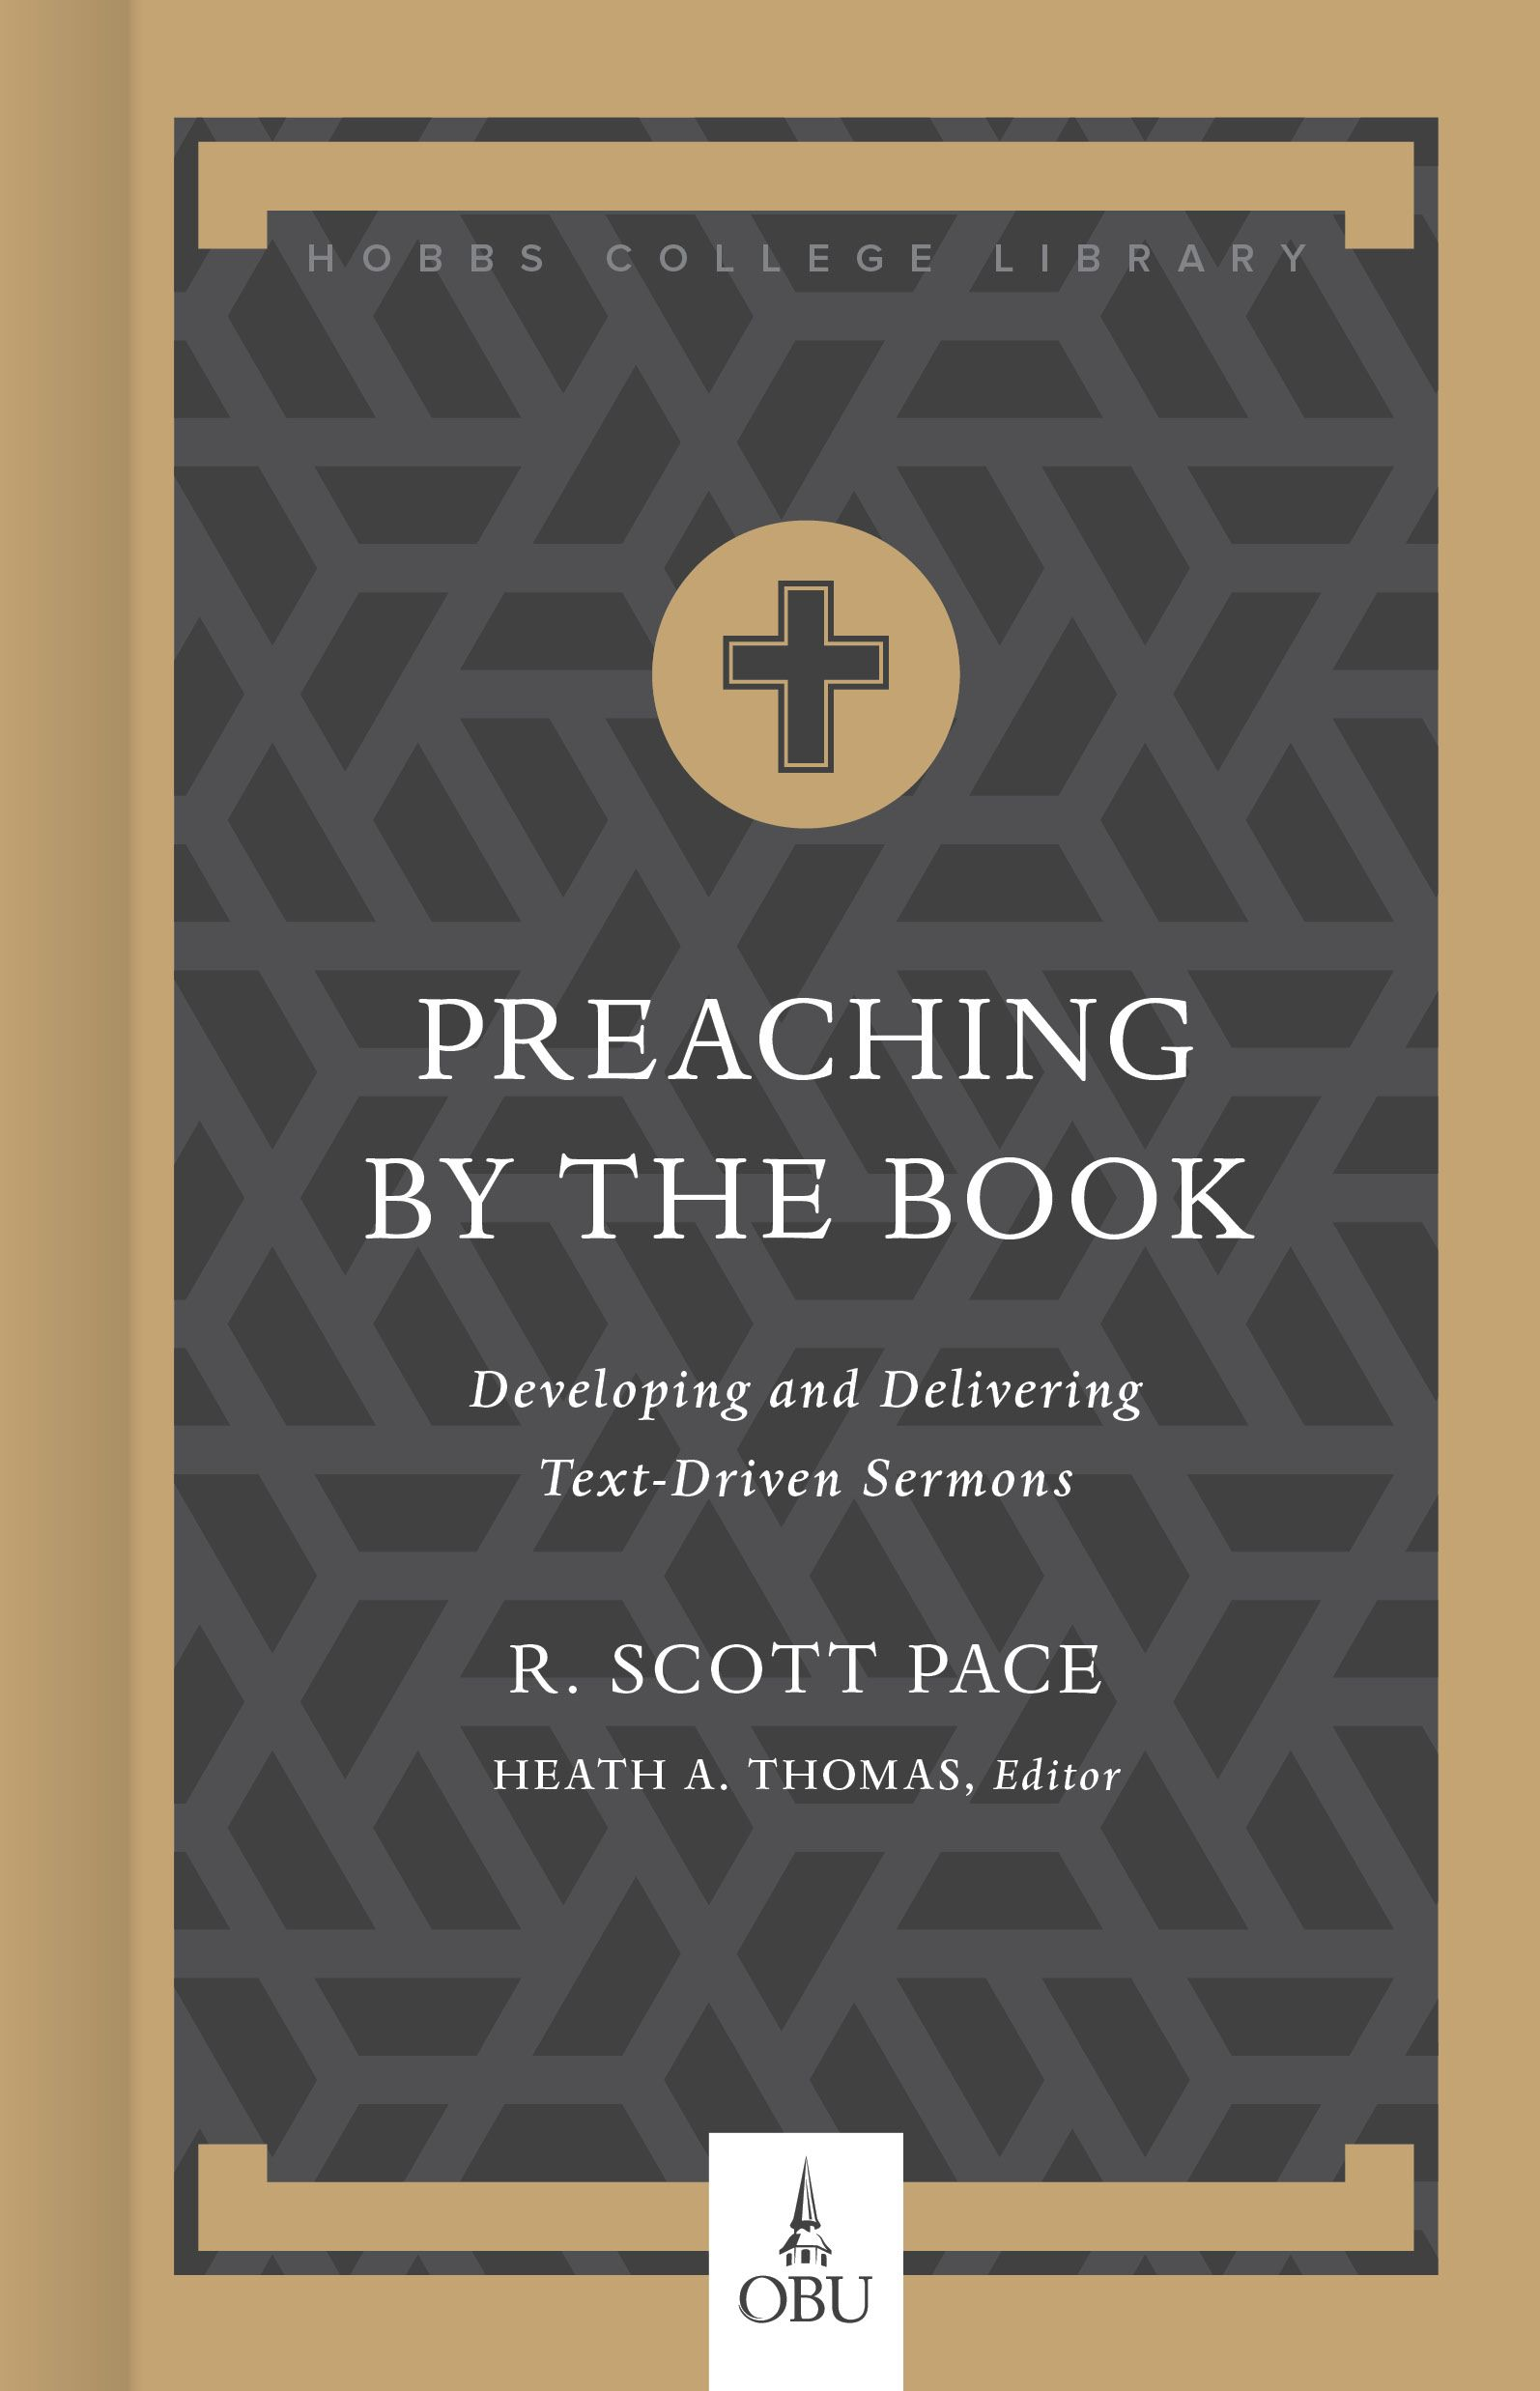 Preaching by the Book